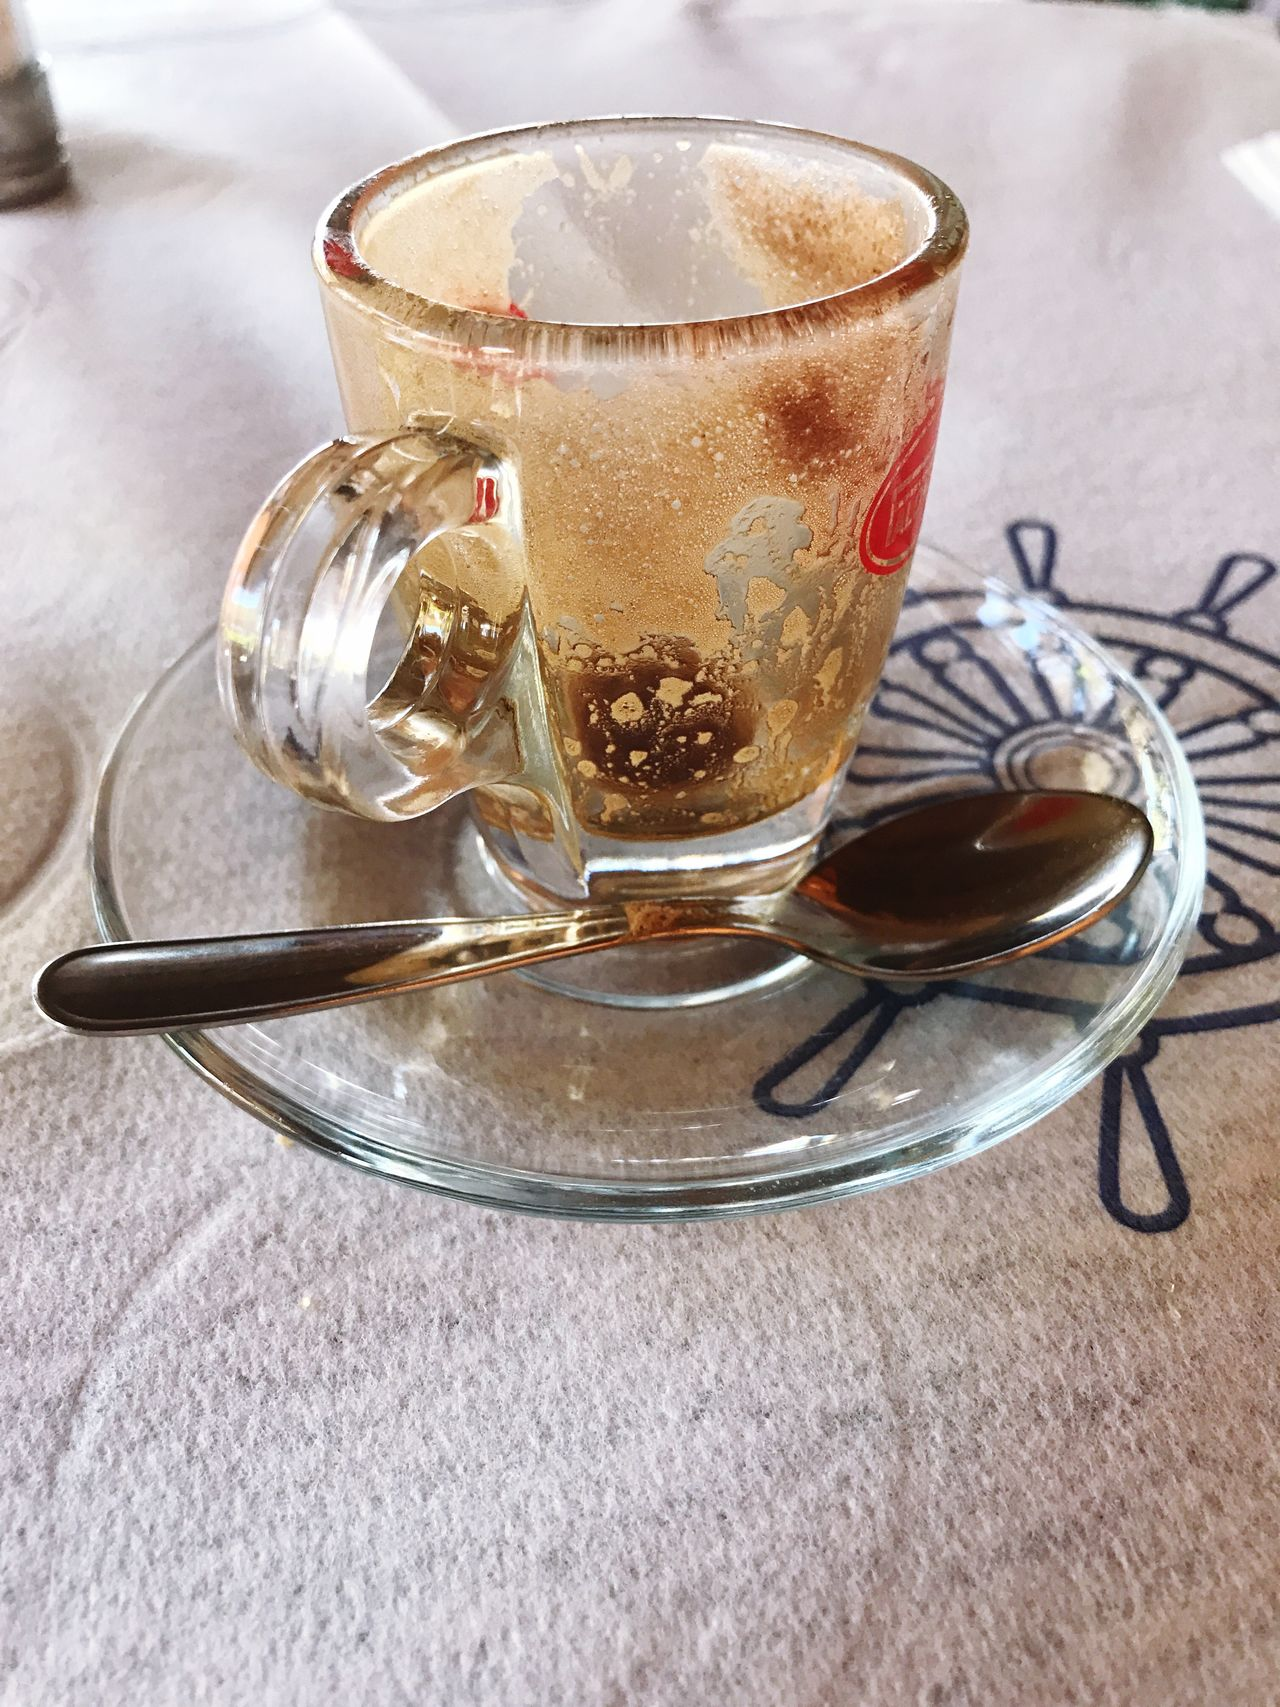 Coffe Food And Drink Table Still Life Drink Drinking Glass Food Plate Summer Summertime Coffee